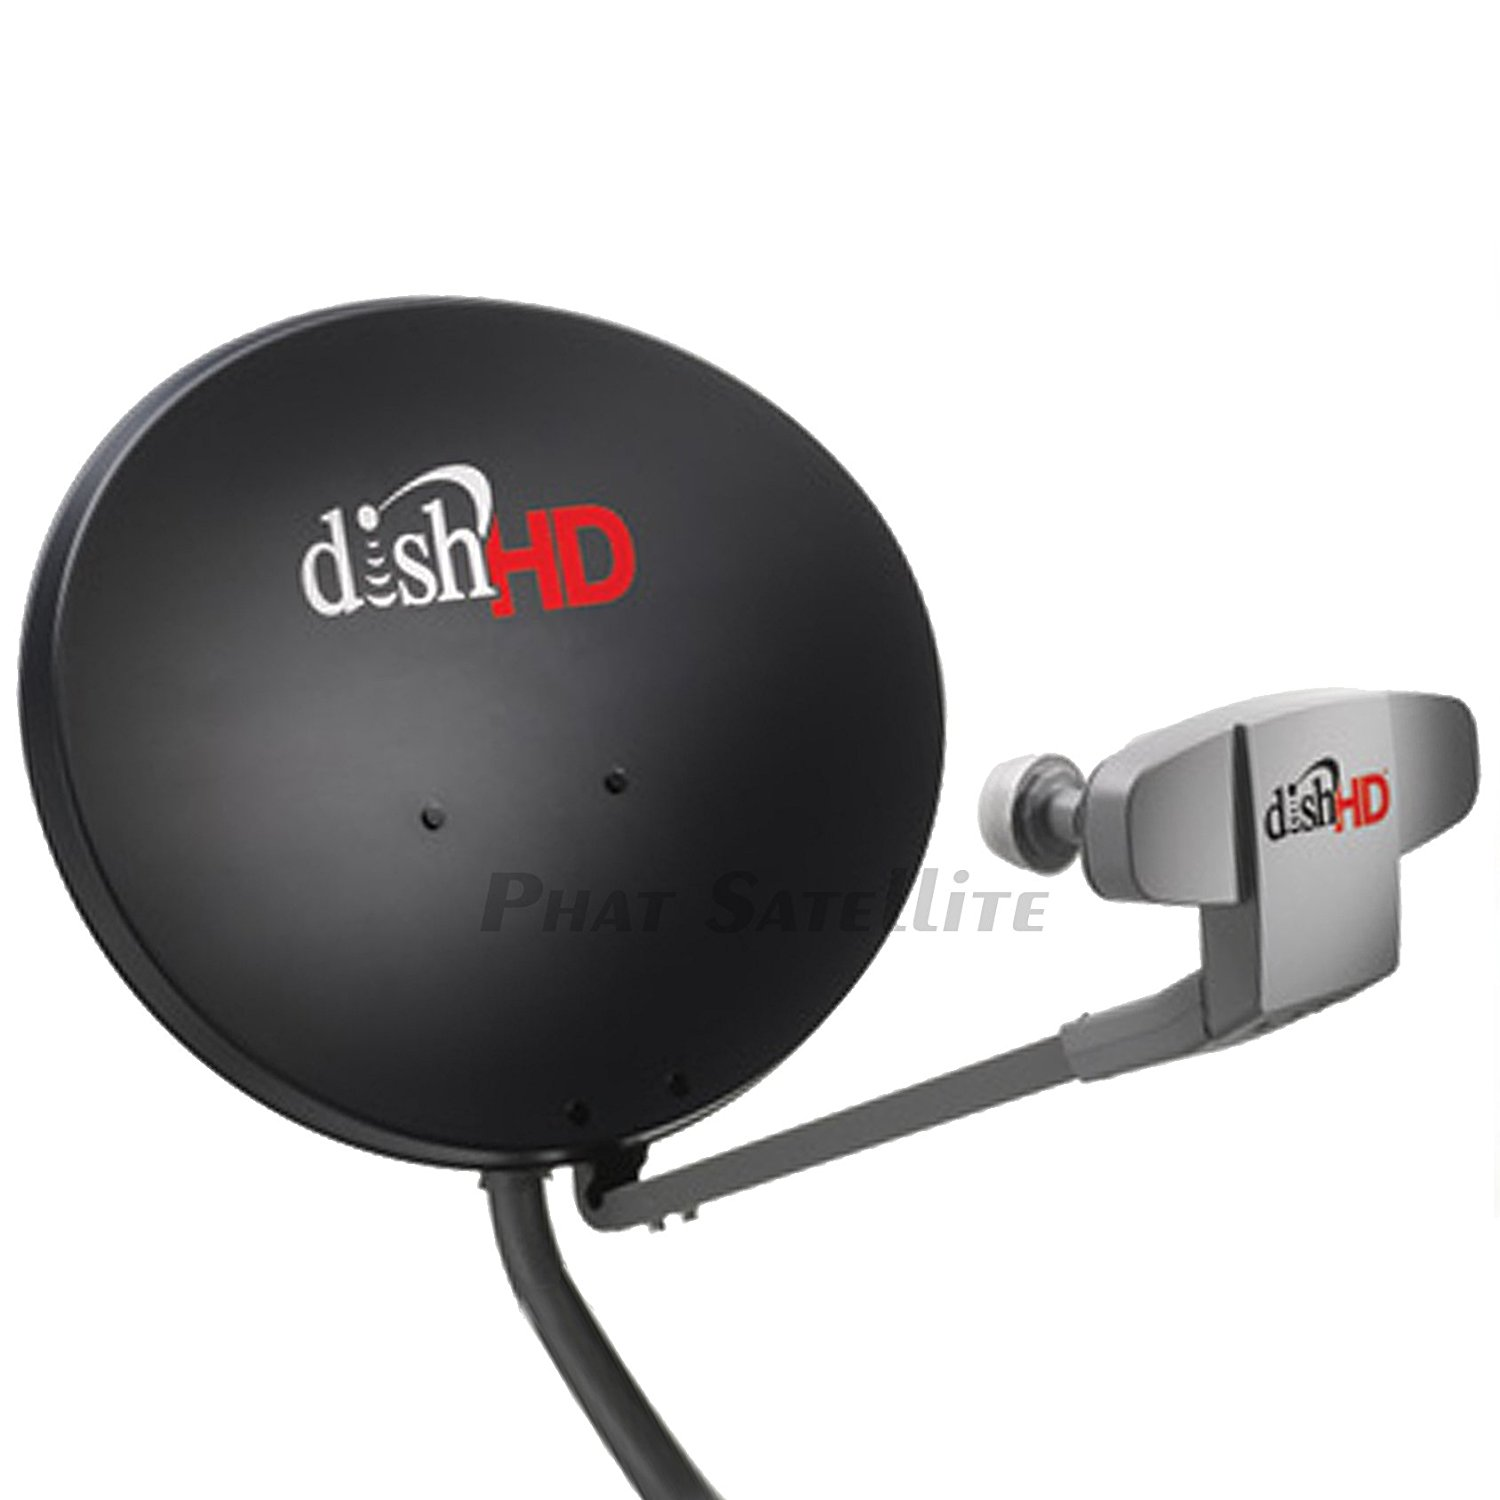 Dish Network High Definition Dish